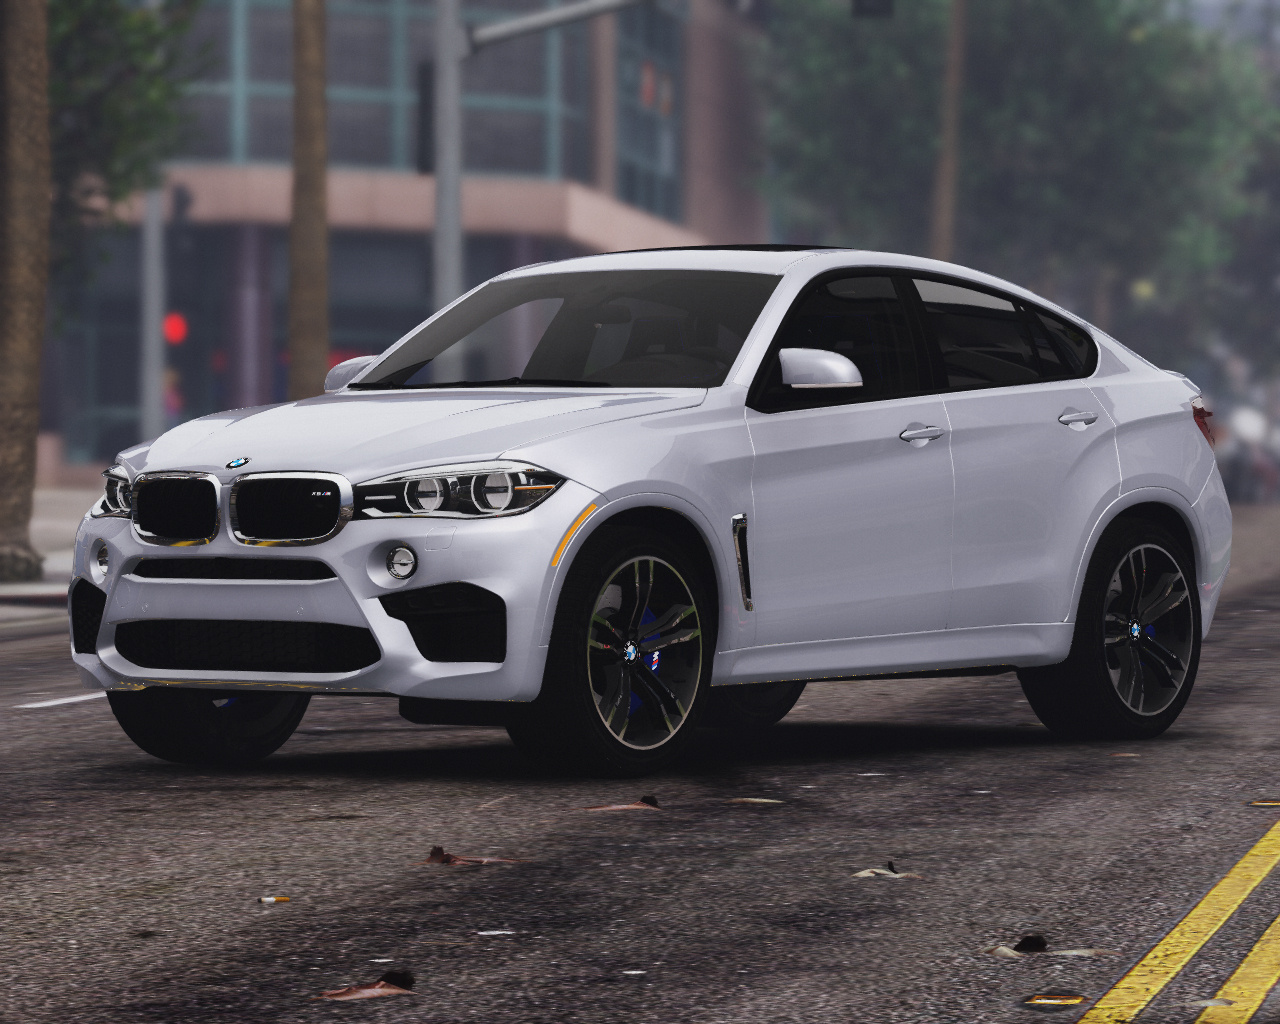 2016 Bmw X6m F16 Add On Tuning Template Gta5 Mods Com